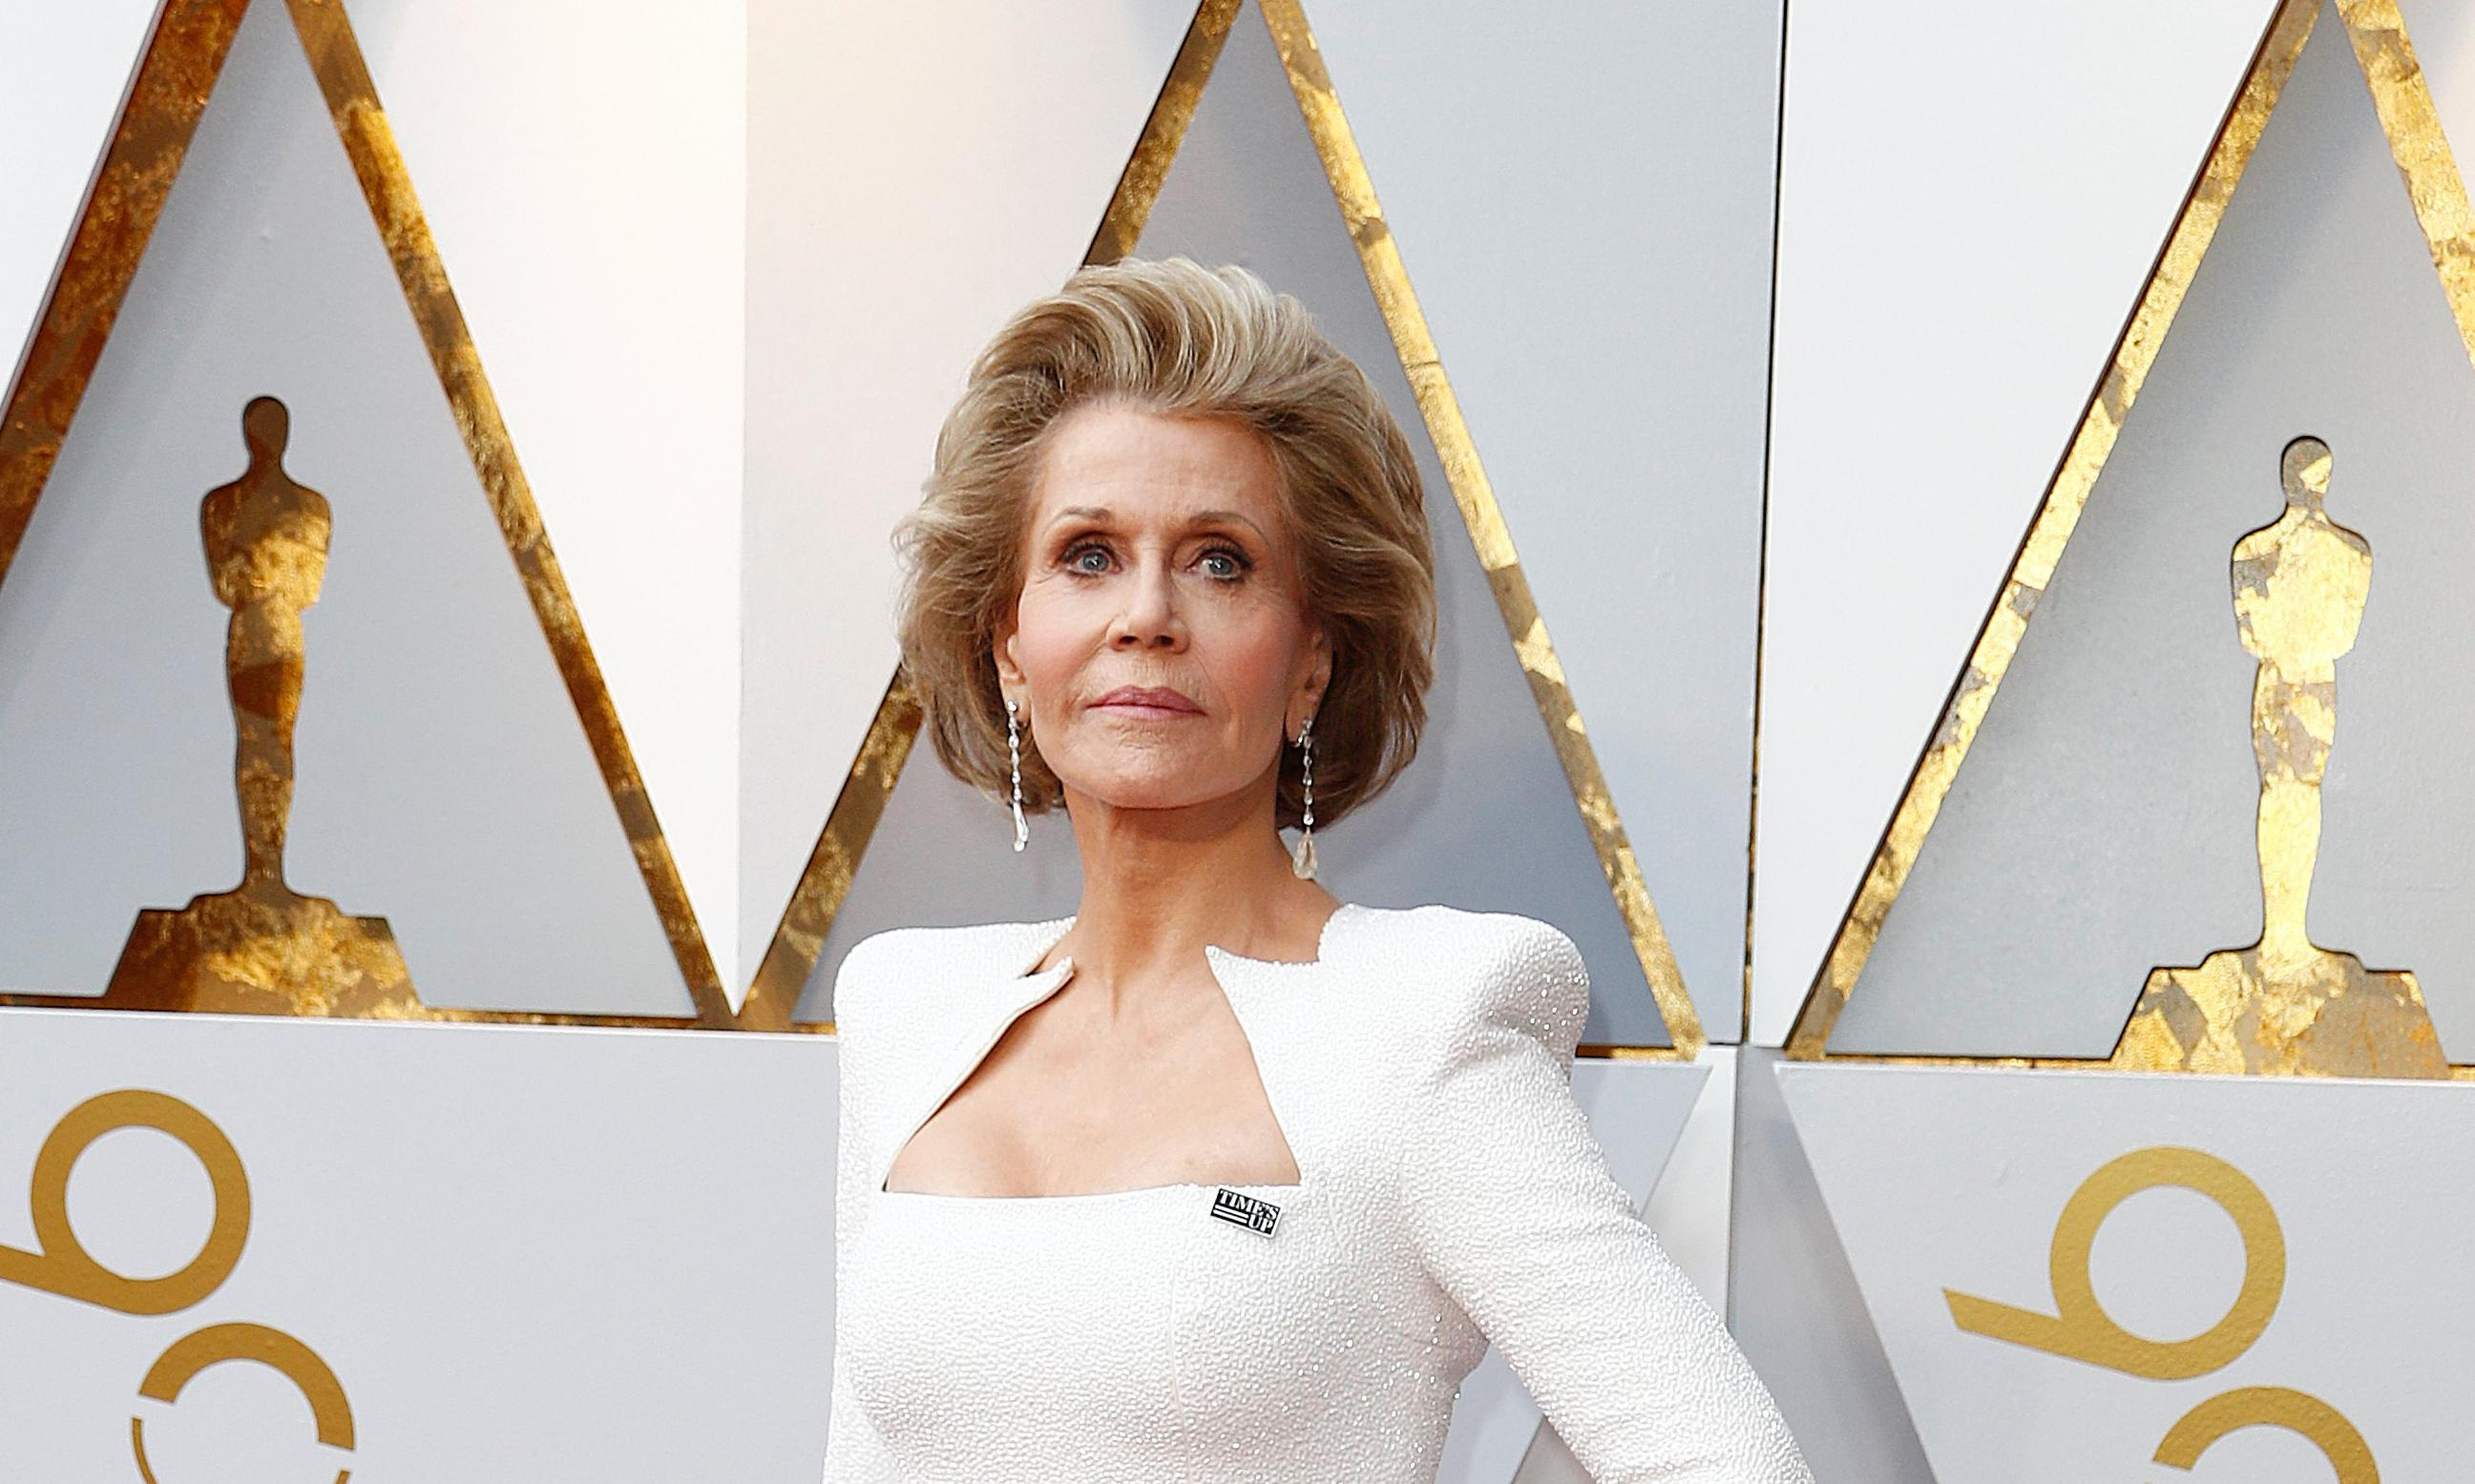 Oscar nominees: 'Women are missing stamp of approval' says Jane Fonda